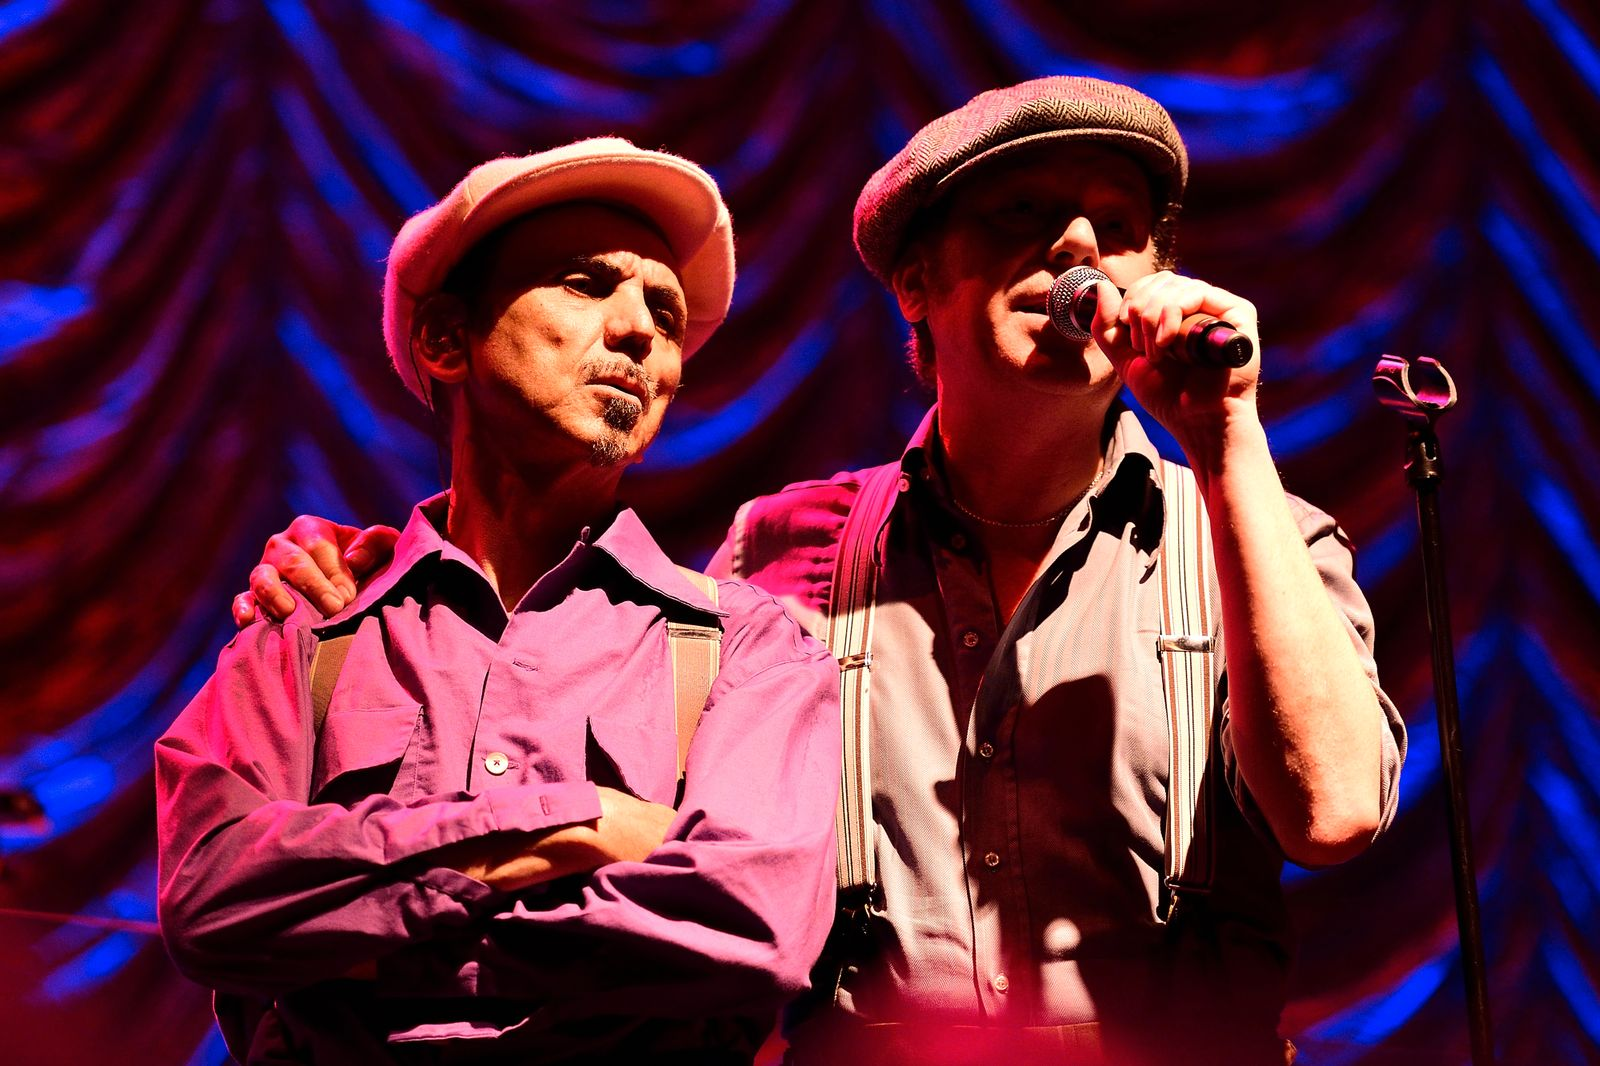 Dexys Perform At The Roundhouse In London